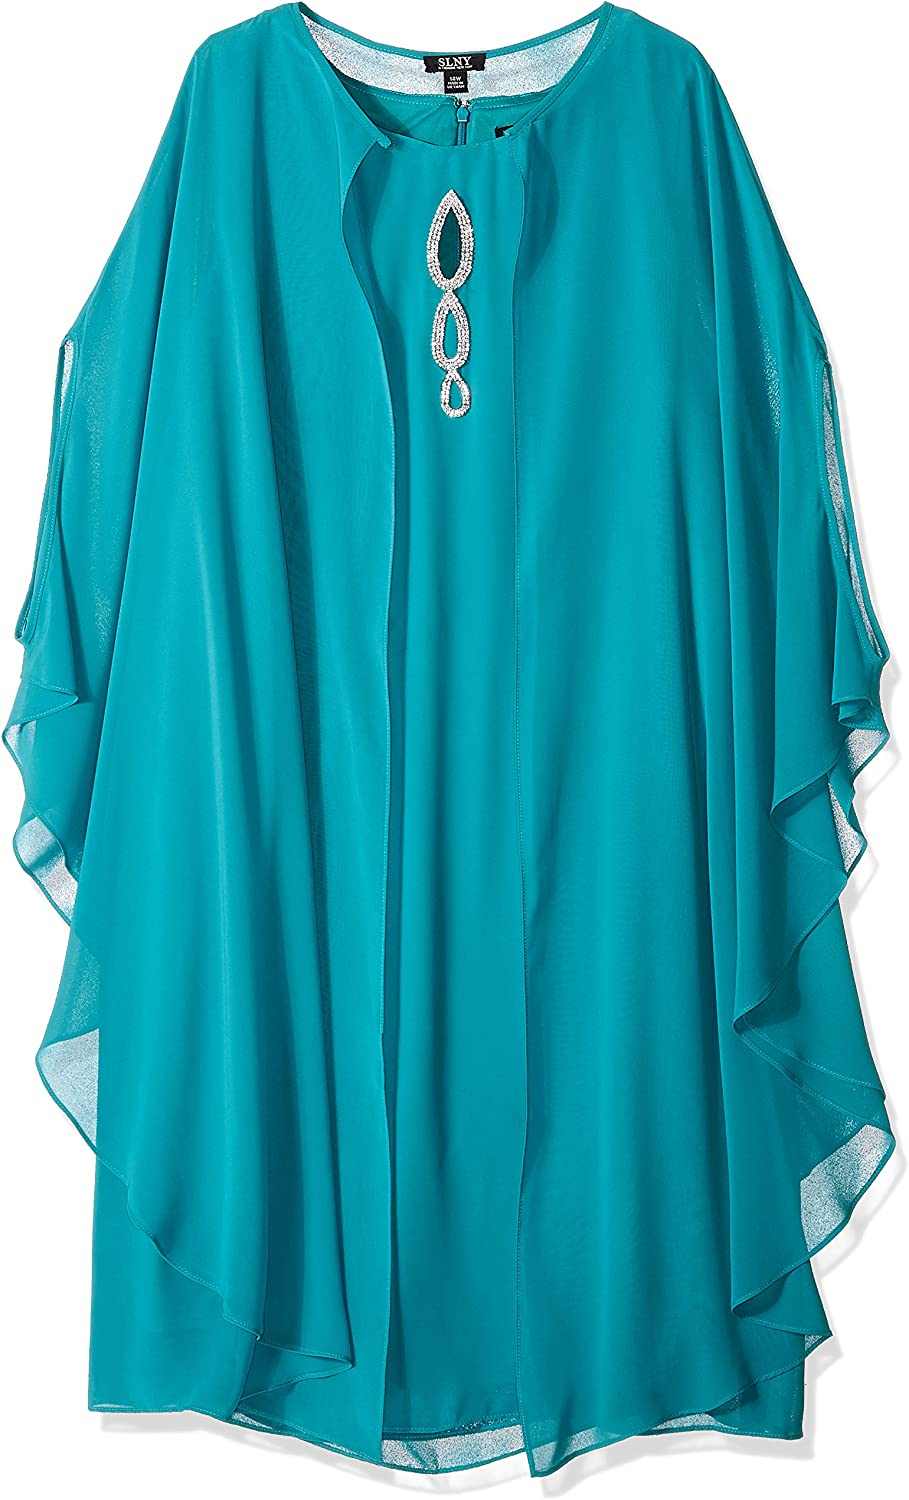 Fashions Womens Plus Size Cape Dress S.L